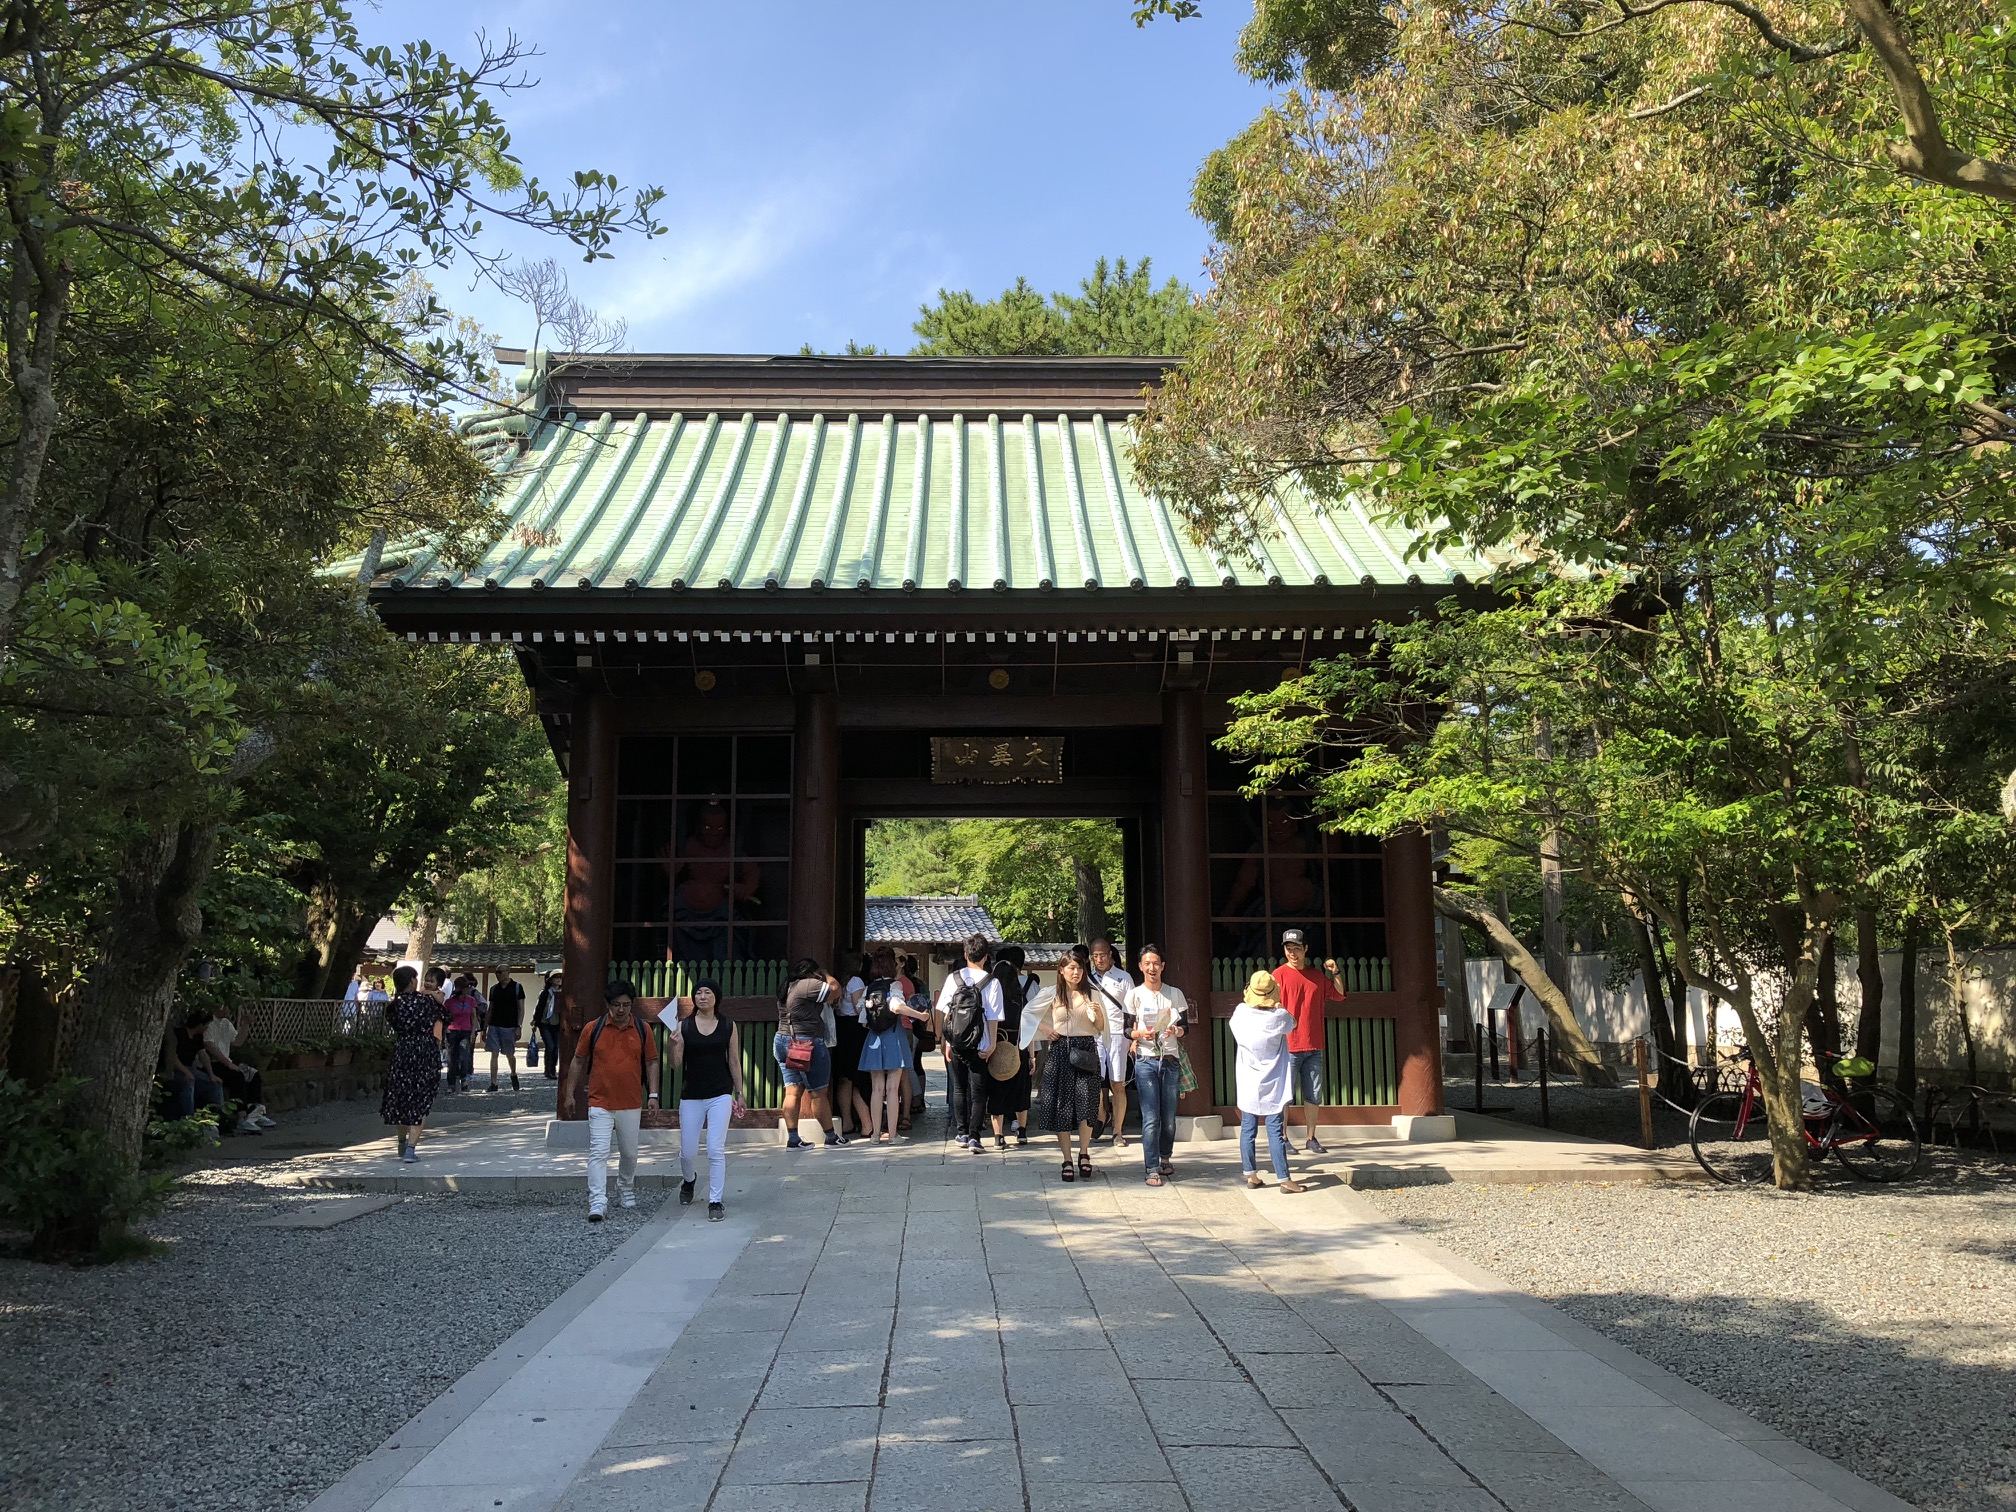 (Caption) But before we get to see Buddha's statue, we're welcomed by 仁王門 (Nioo-mon Gate).